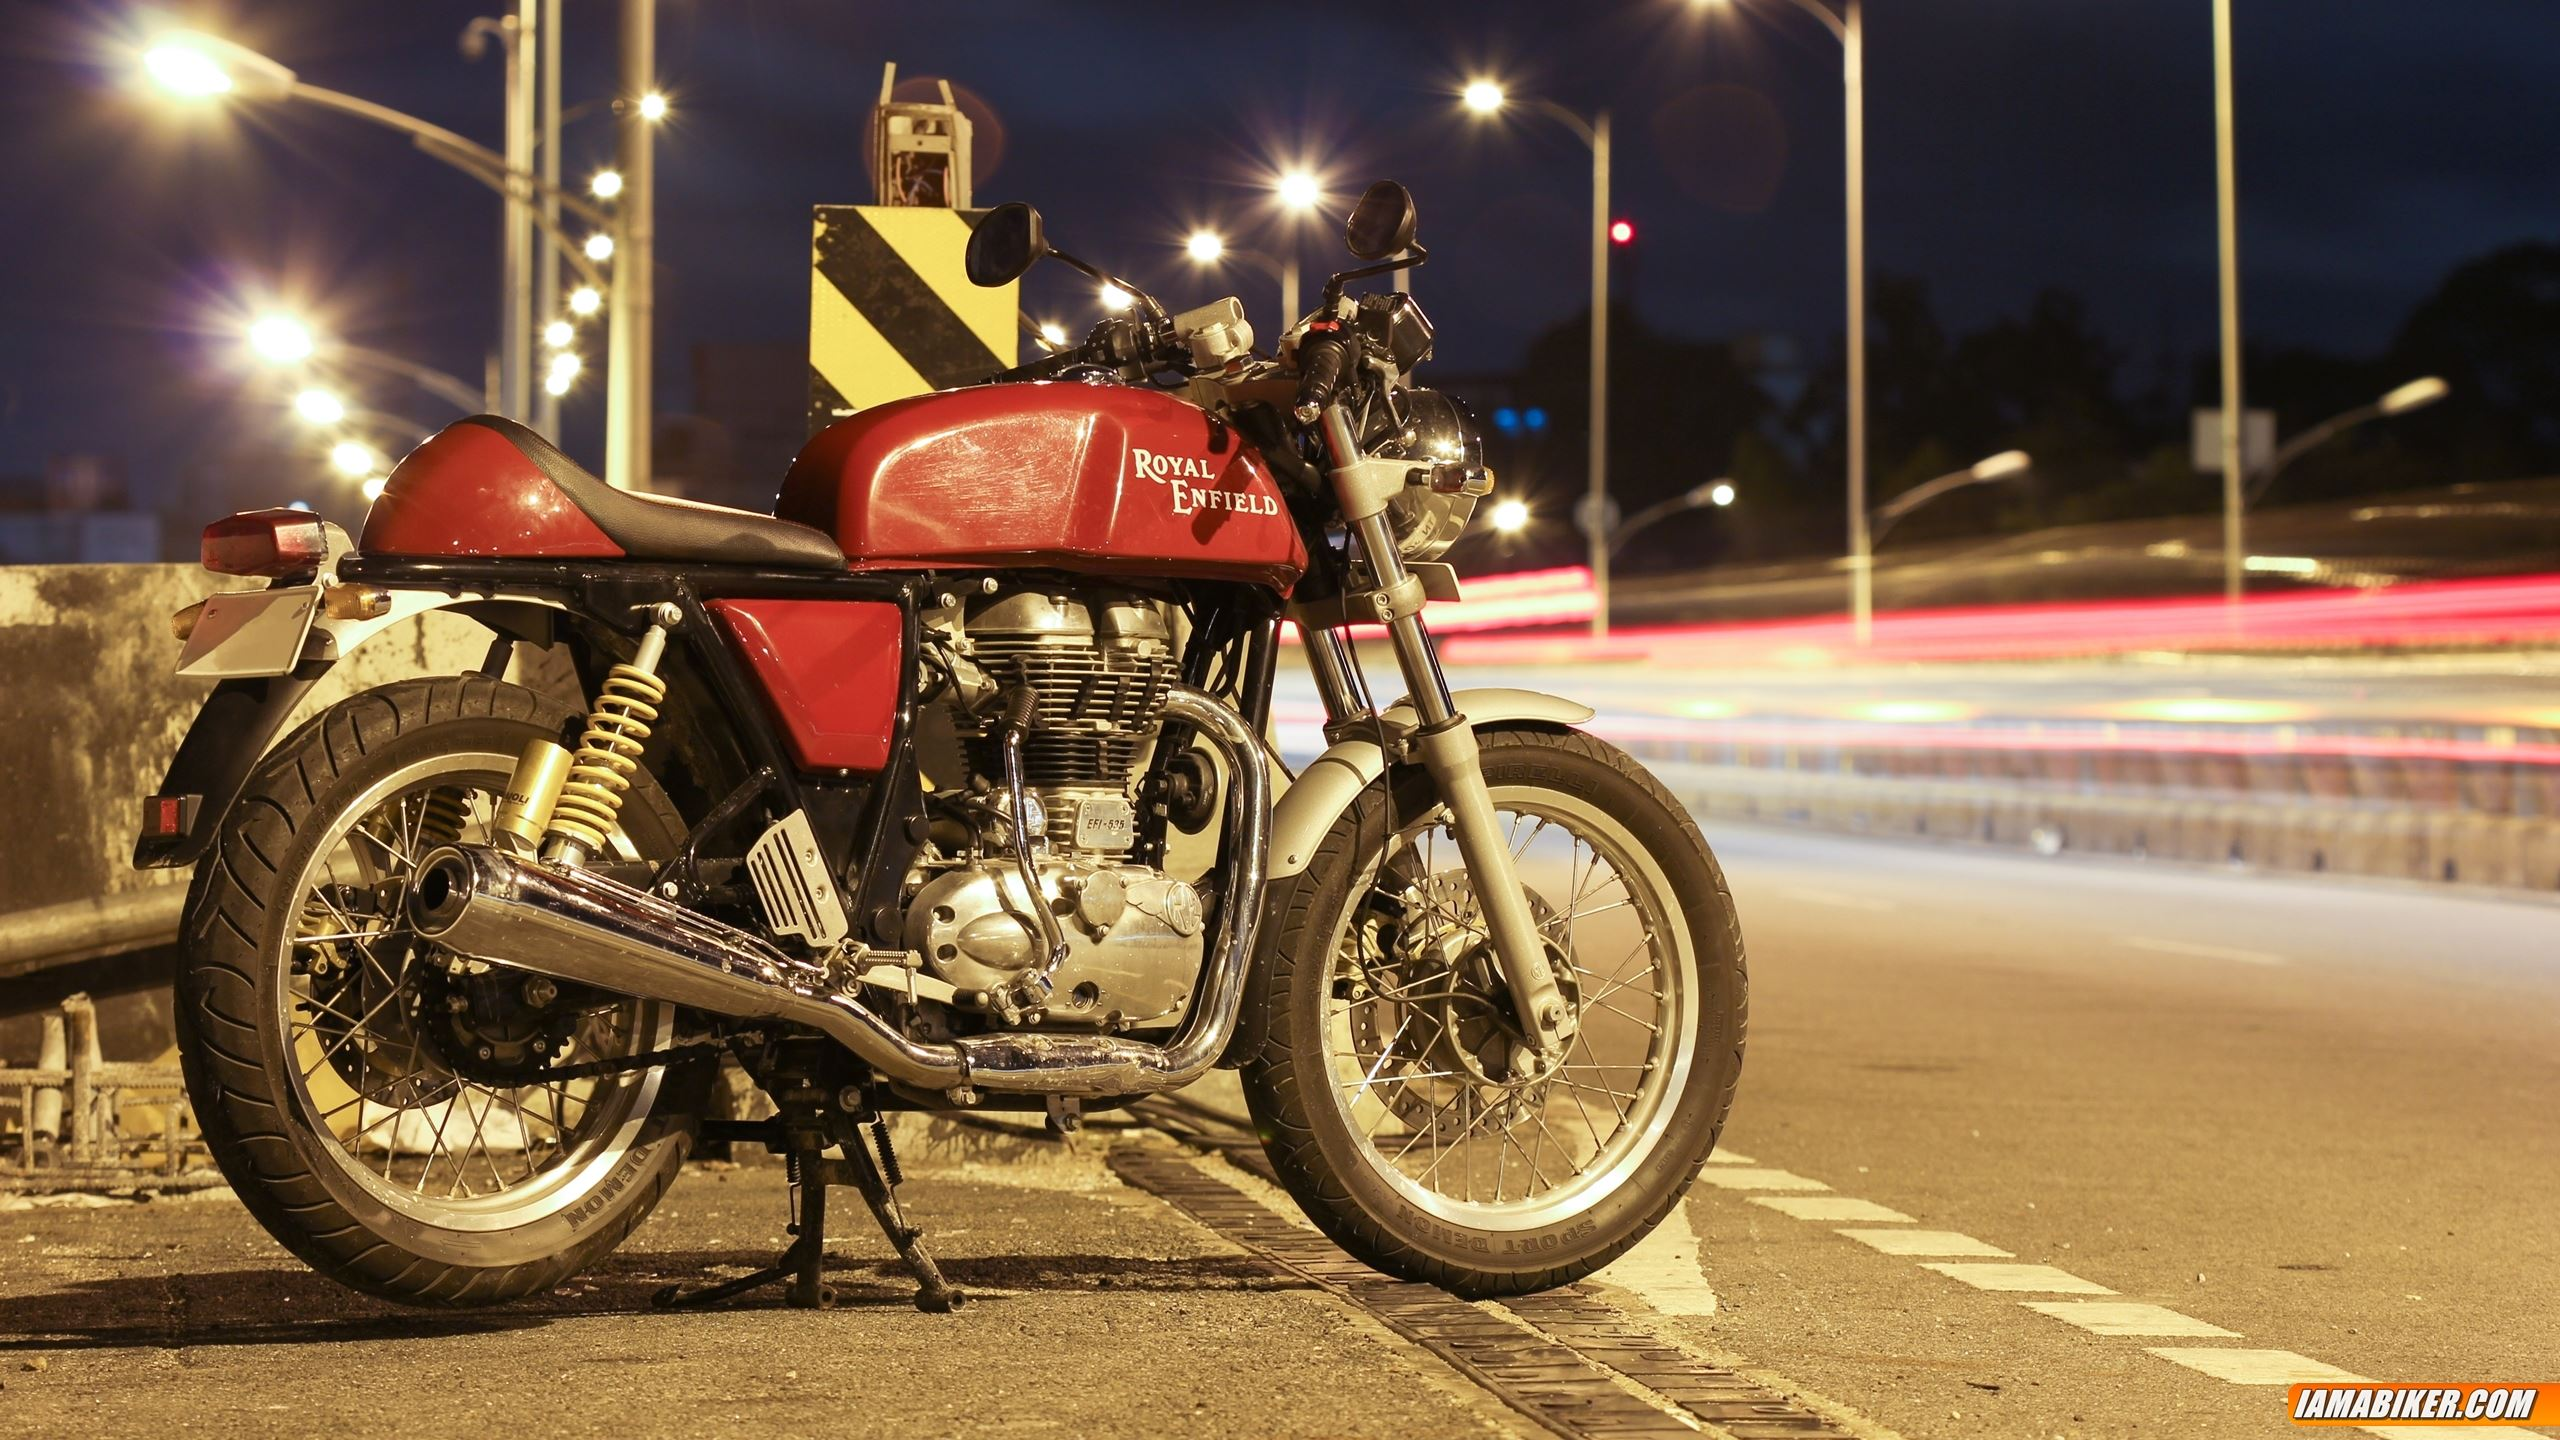 Royal Enfield Continental Gt Hd Wallpapers Iamabiker Everything Motorcycle